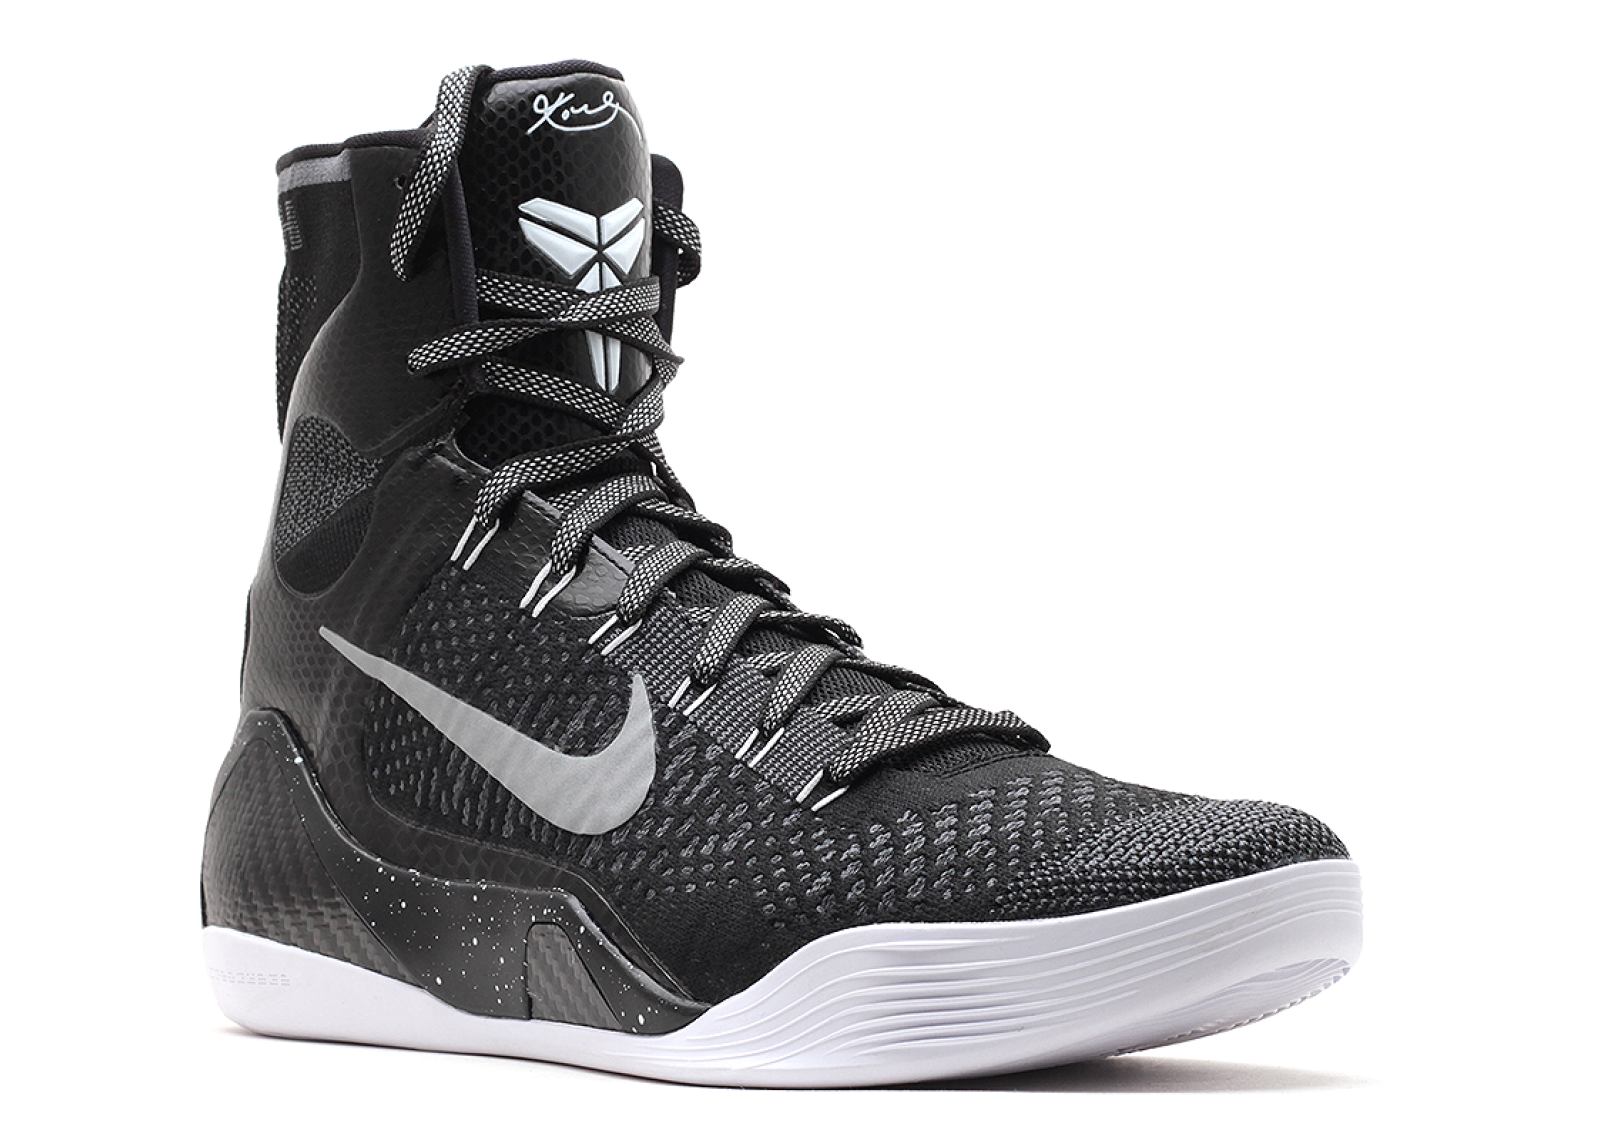 online store 0dcf0 69a06 60fc1 11beb discount code for kobe 9 elite premium 678301 001 7d9d3 a5a3f  reduced nike ...